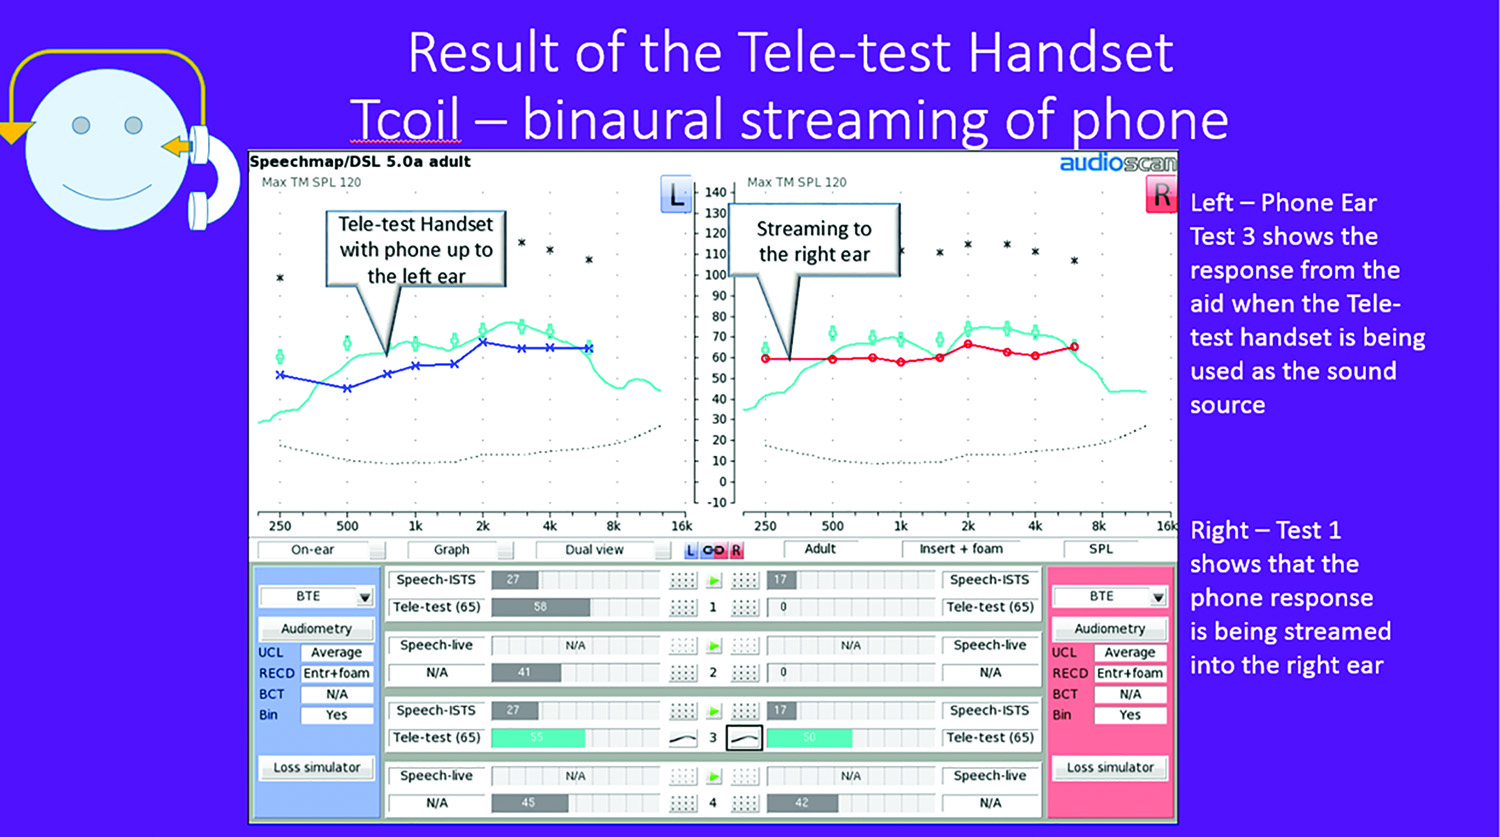 Verifying Telephone Programs In Hearing Aids This Gives You The Usual Tele Sounds First Three Positions But Binaural Rem Measure With Test Handset Streaming